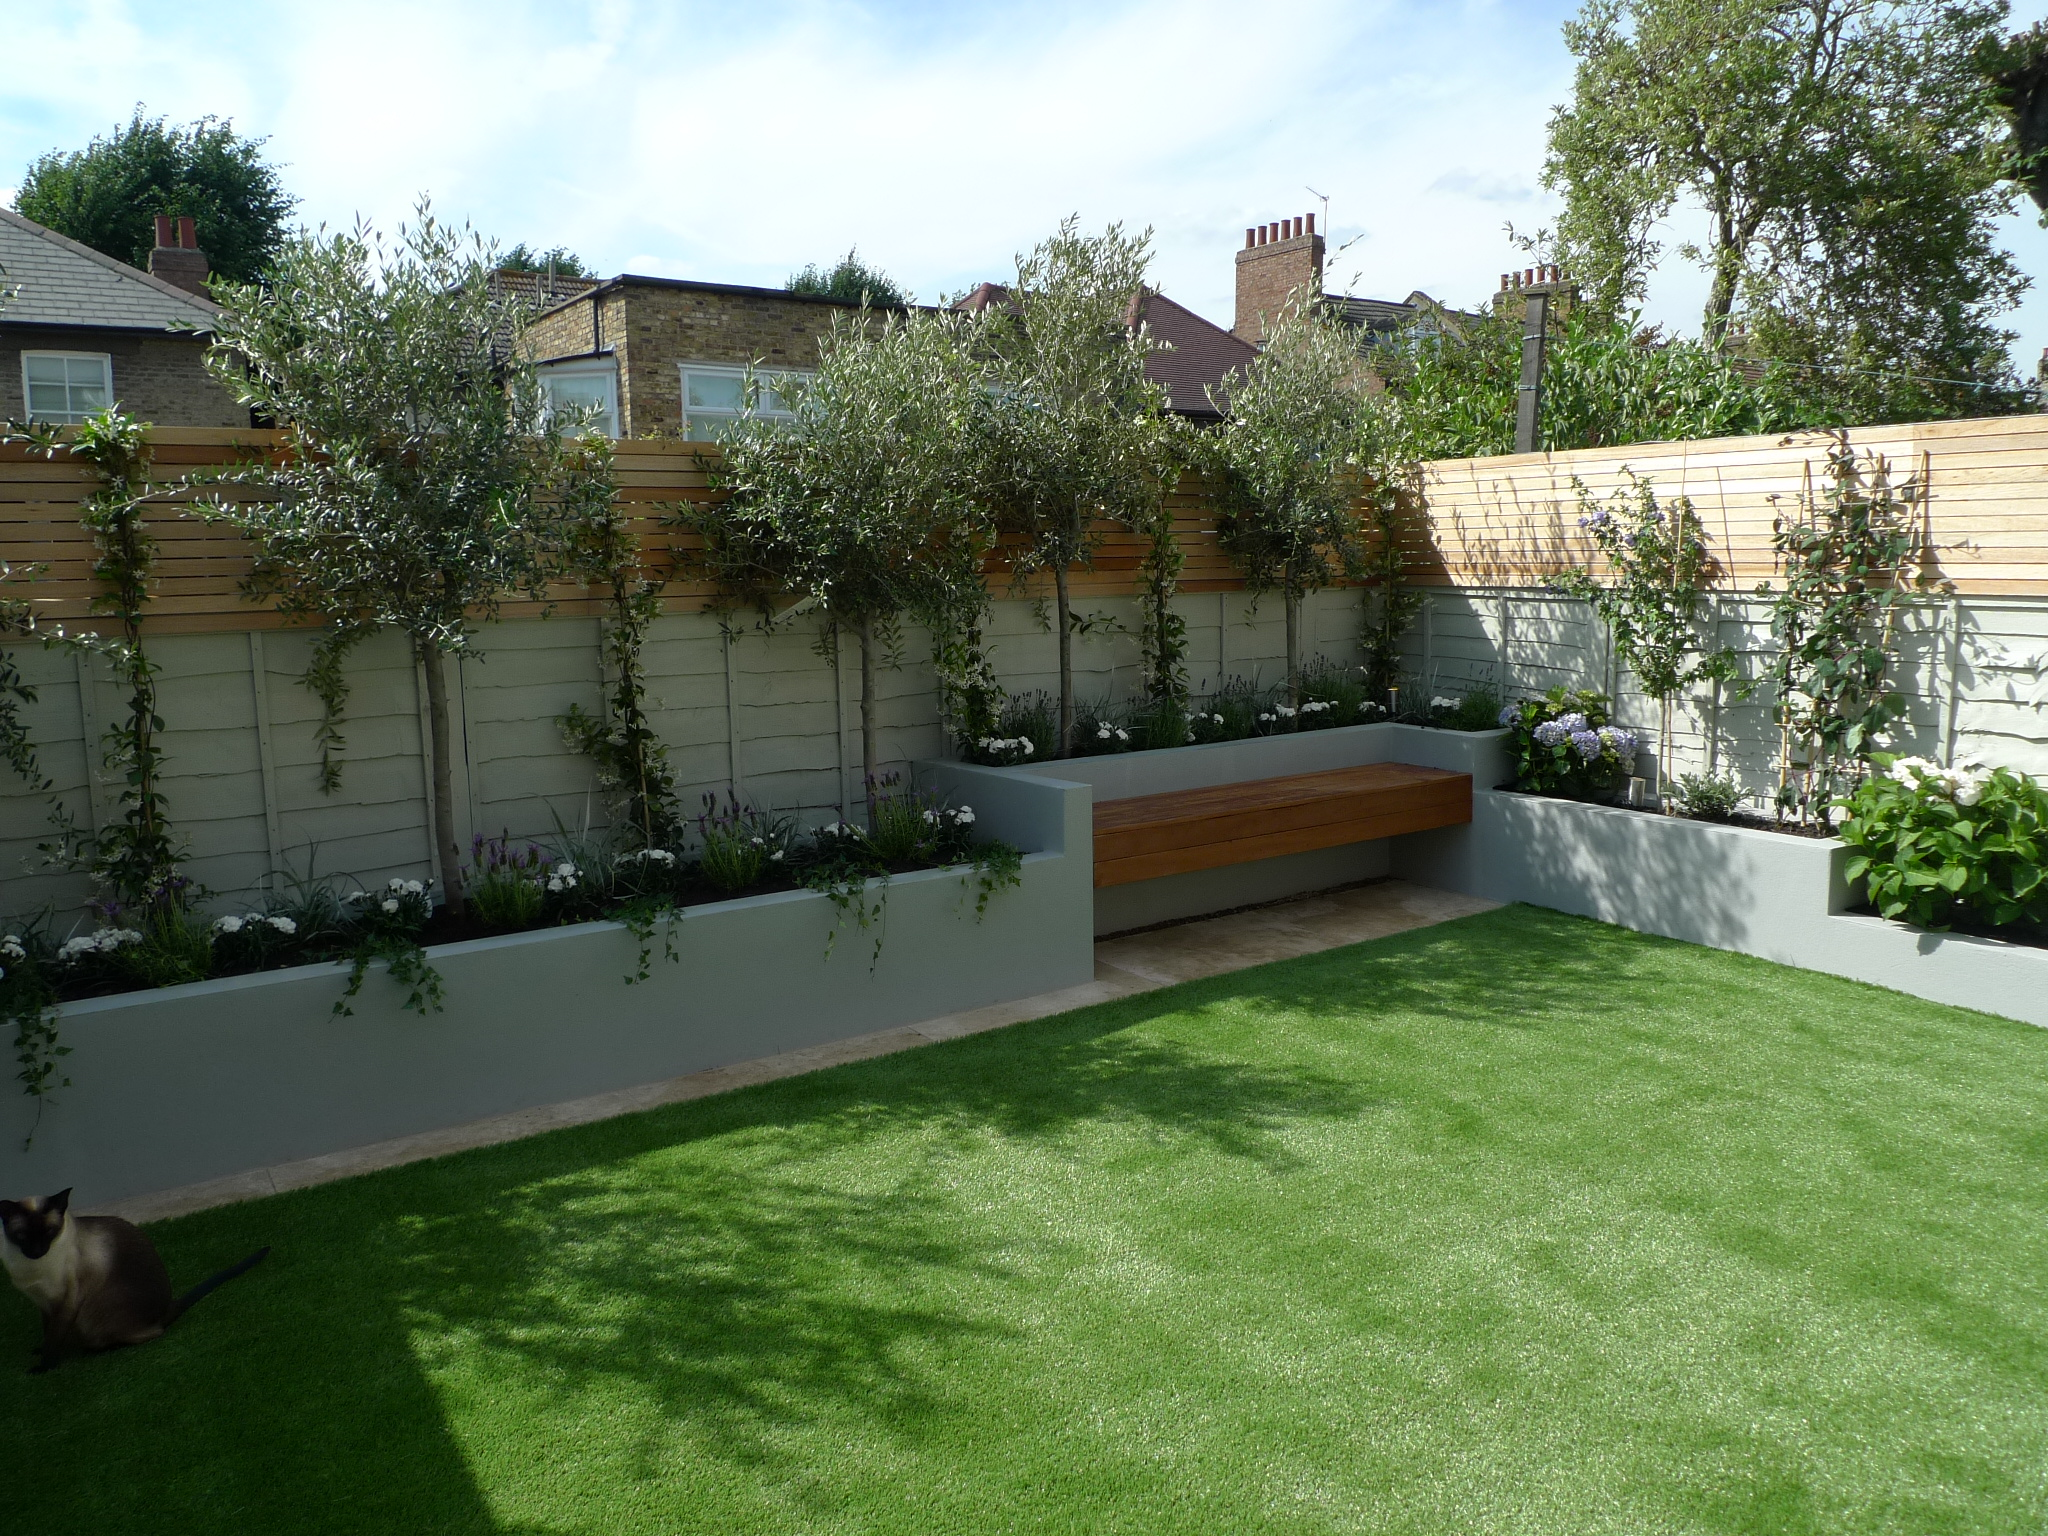 hardwood cedar privacy screen trellis floating bench easi grass travertine cream buff paving contemporary garden design designer battersea balham clapham fulham chelsea putney wandsworth london